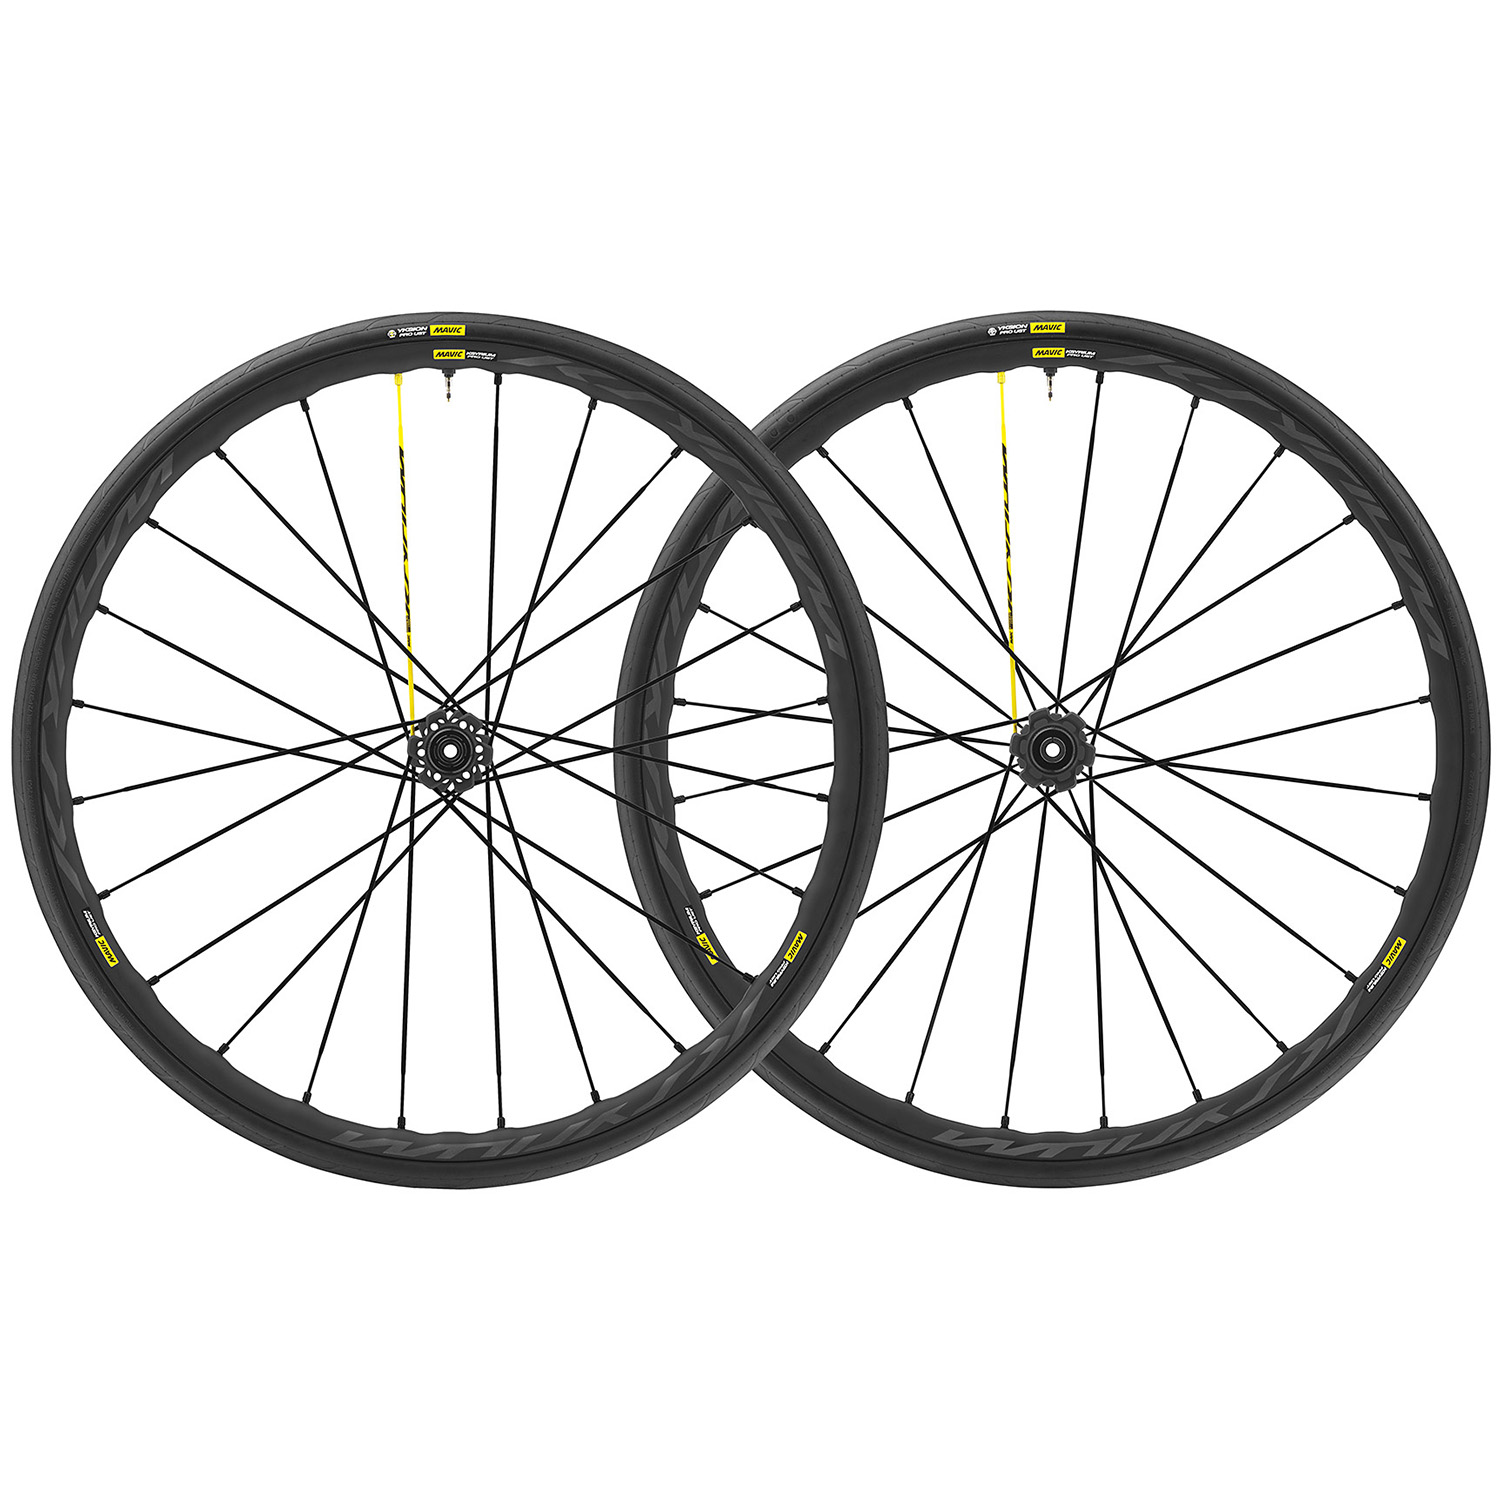 Mavic Ksyrium Pro UST Disc Road Wheels - 2018